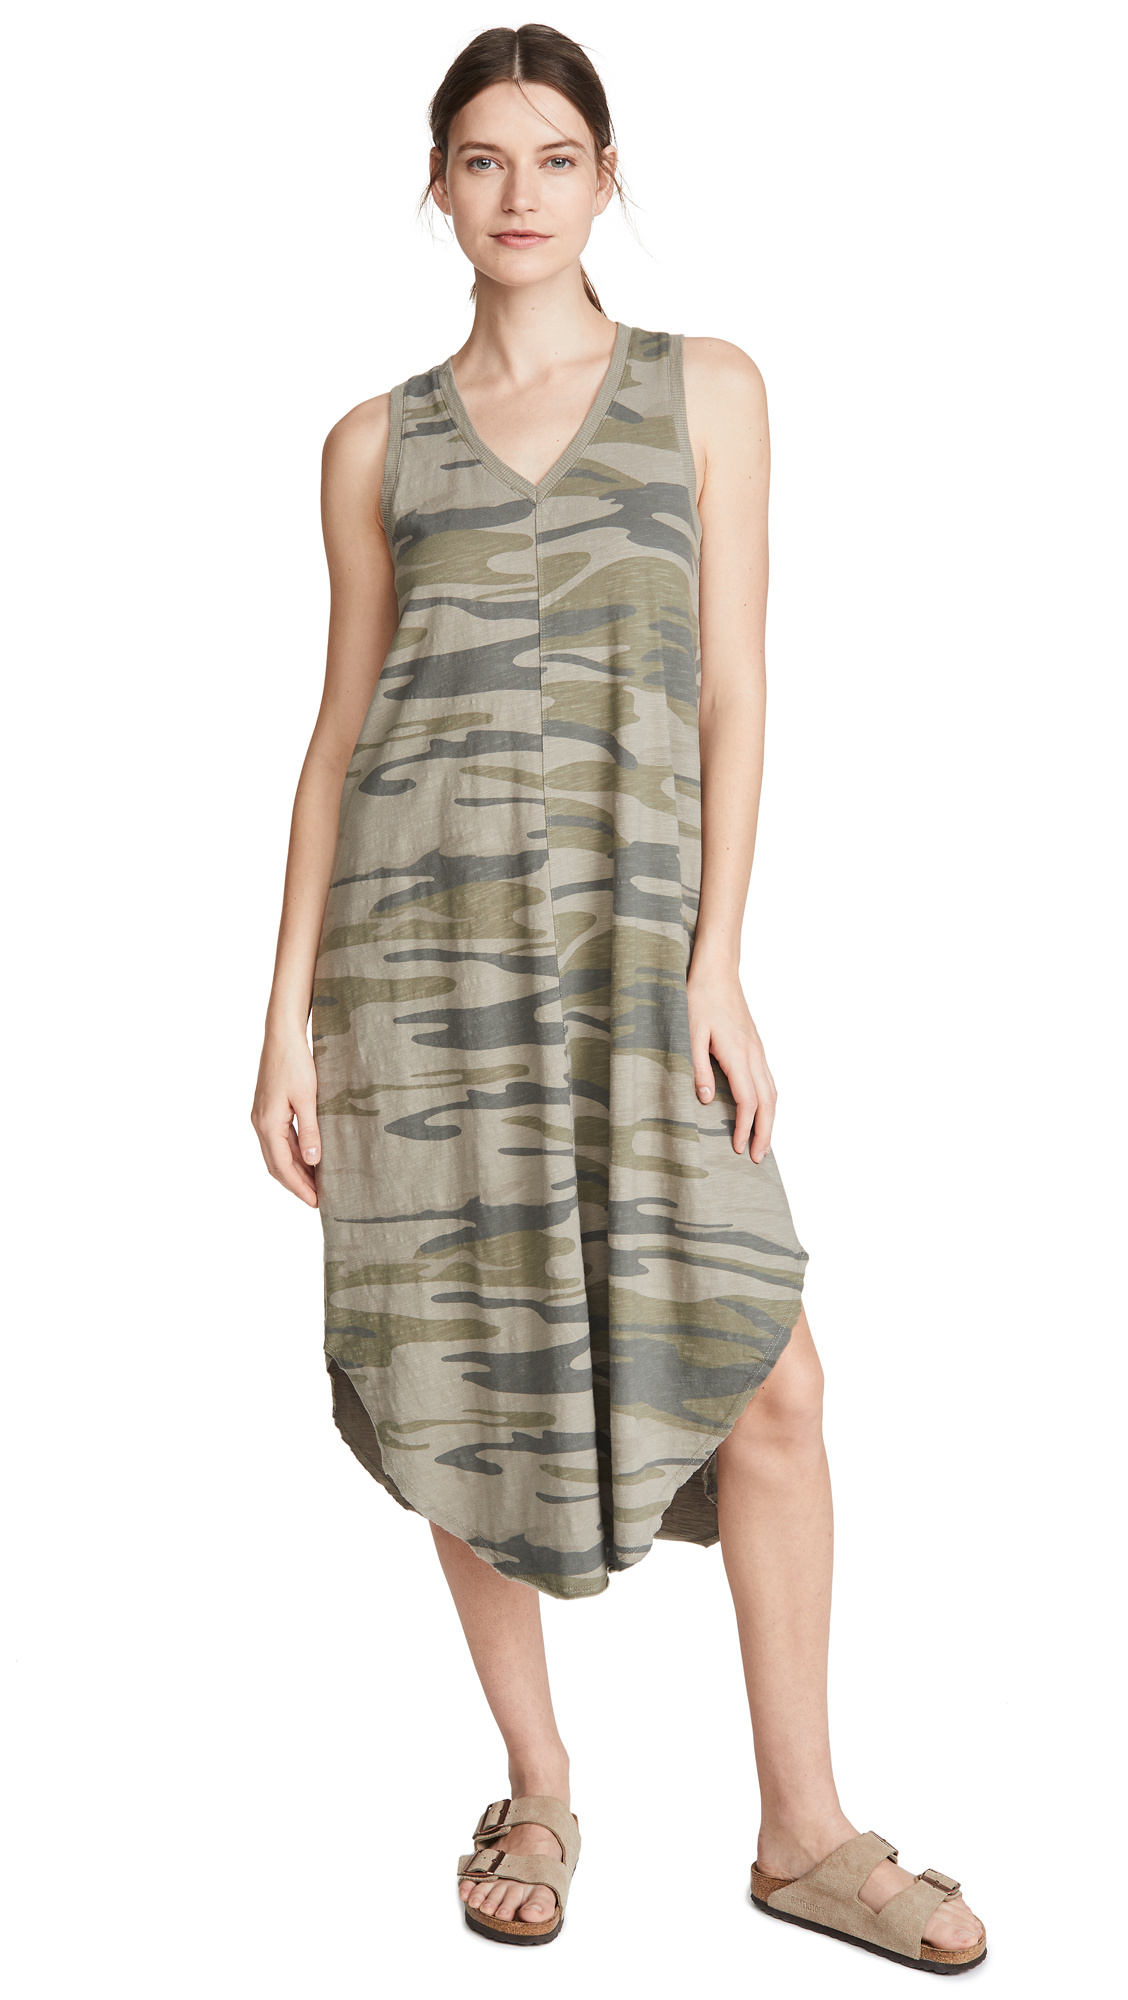 Z Supply Camo Reverie Dress